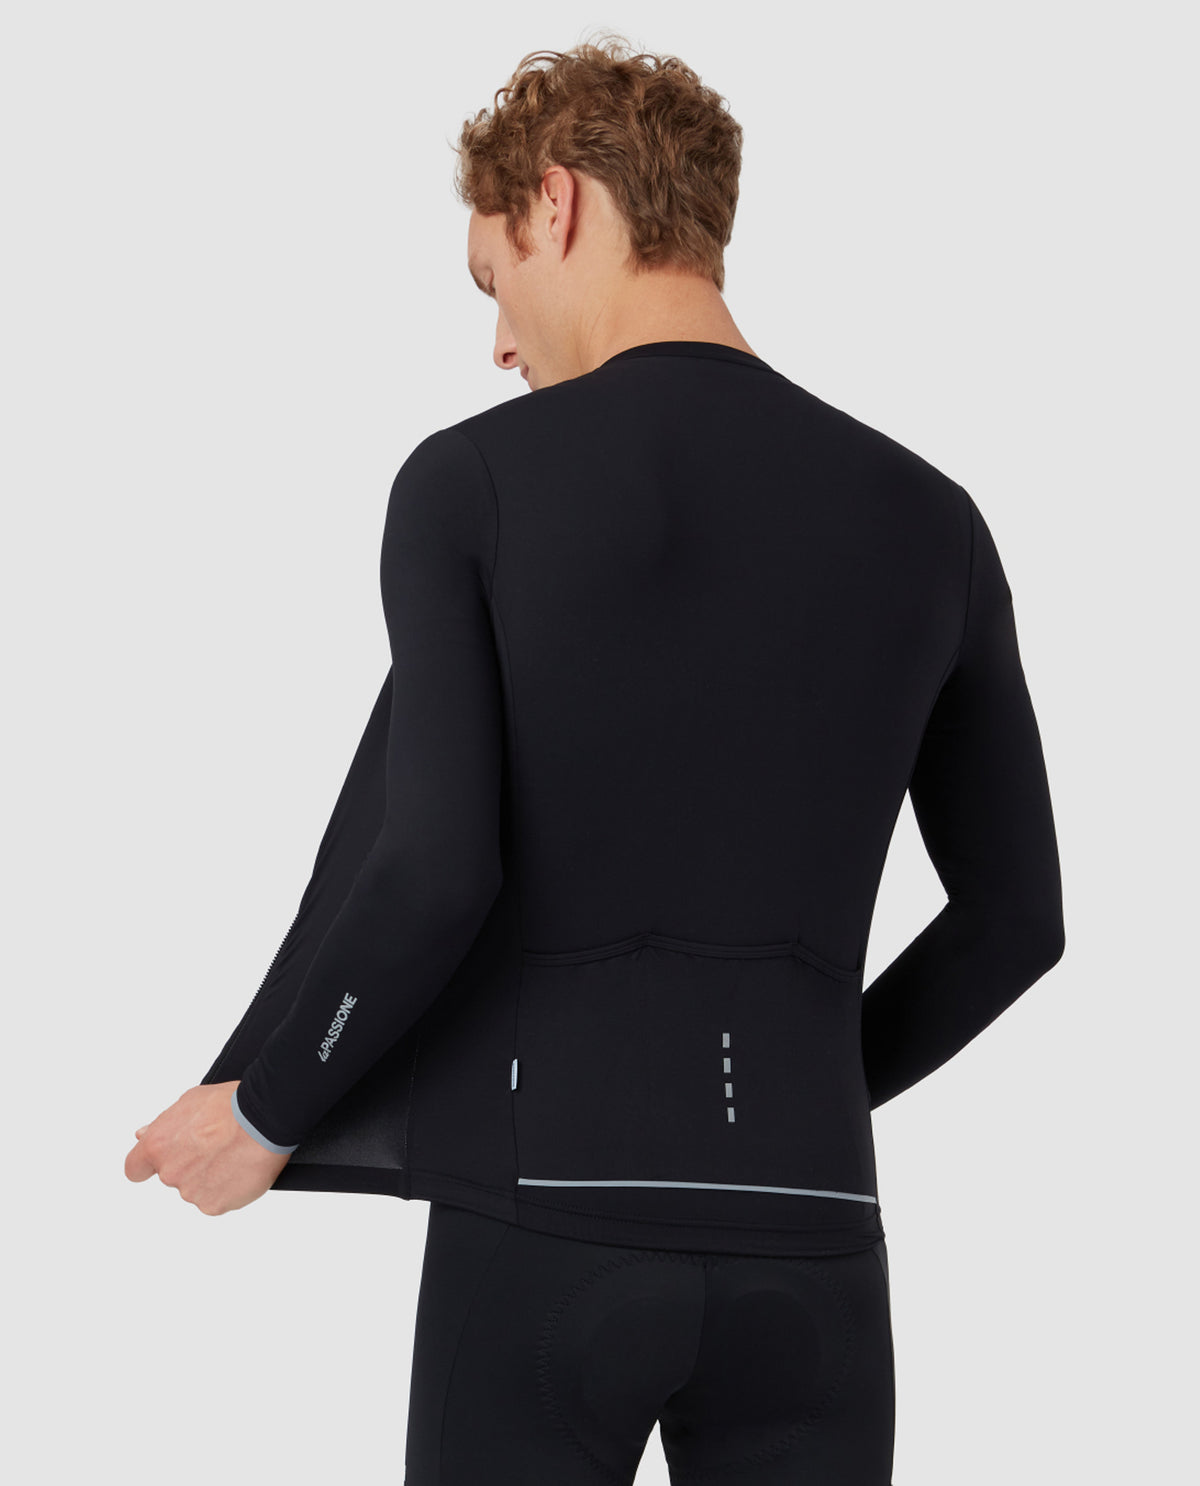 PSN Long Sleeve Jersey Midweight Black